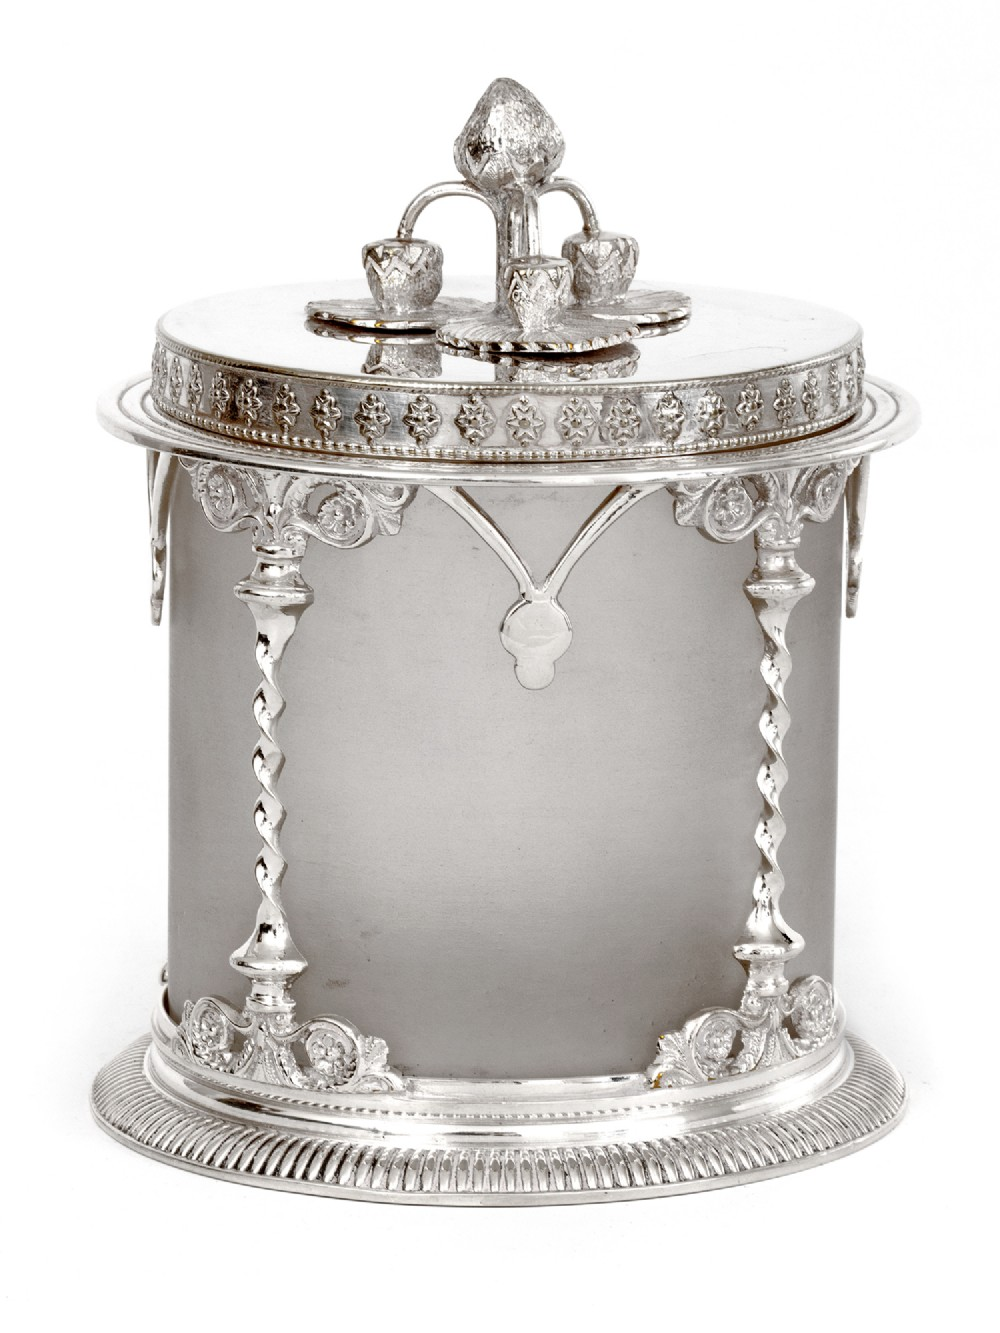 antique silver plated preserve pot with a cast strawberry finial and frosted glass liner